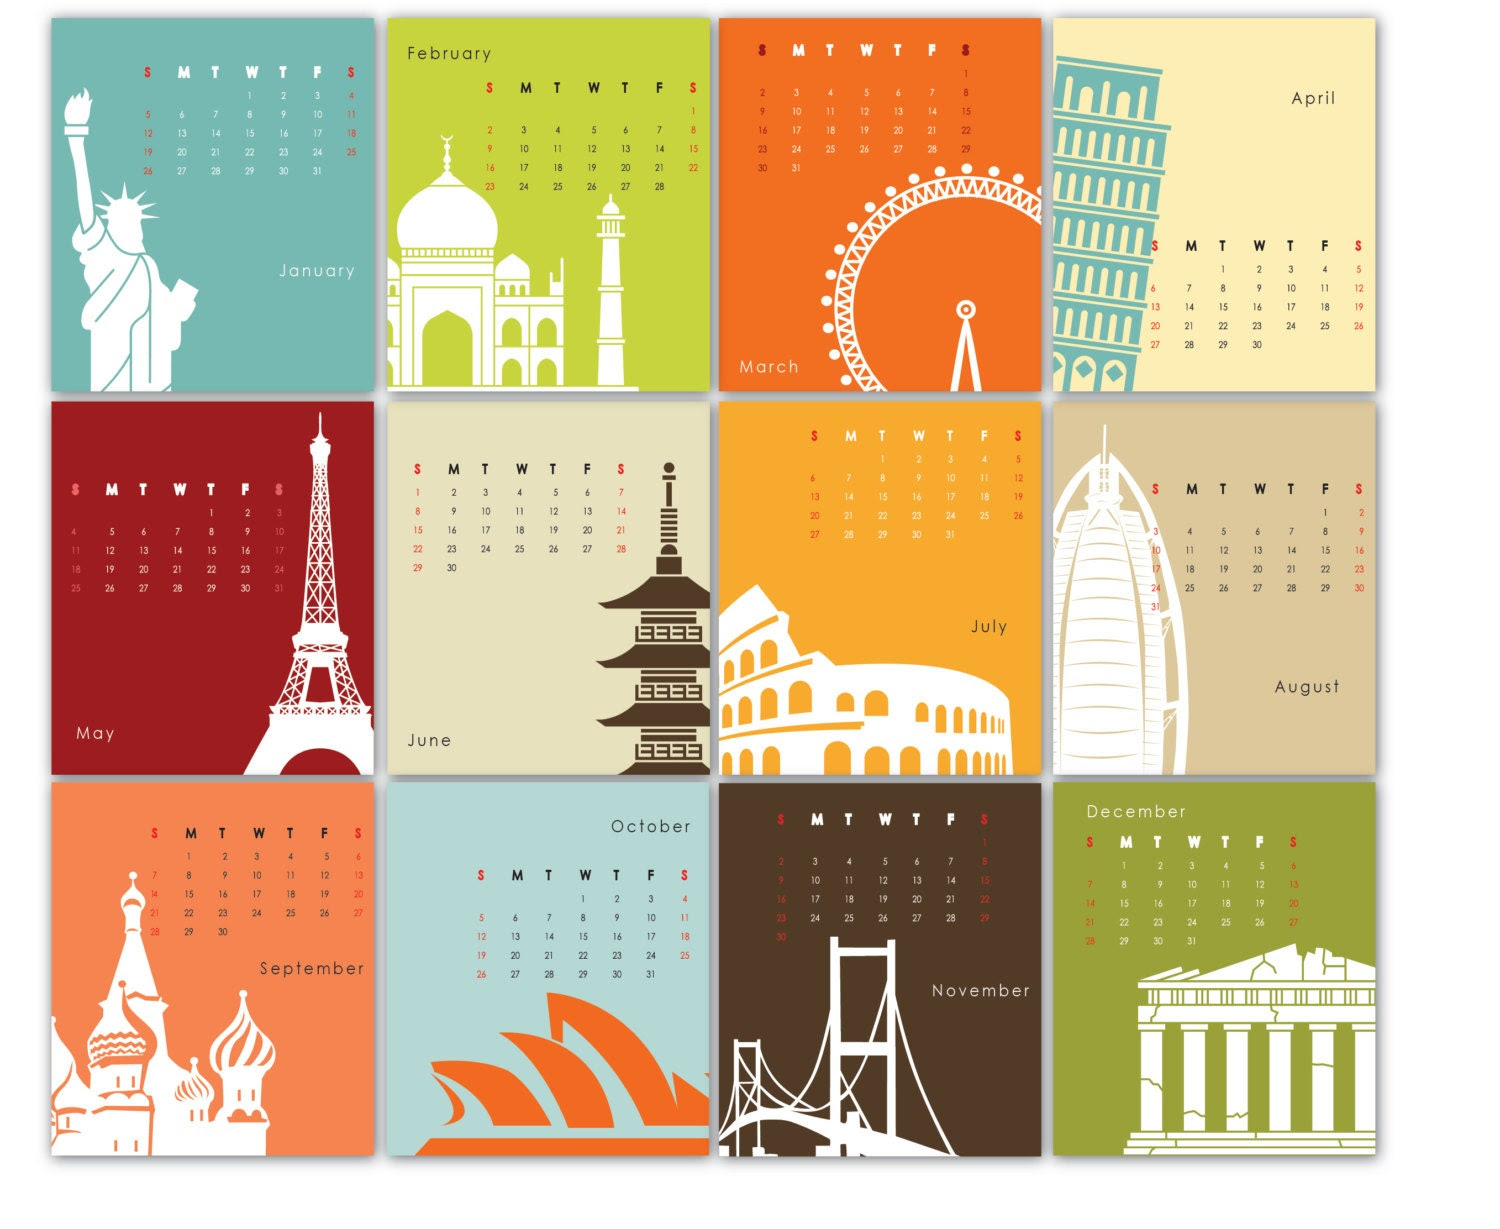 Printable Calendar 2014 - Landmark Architecture, Building Silhouettes, travel destinations - colorful illustrations